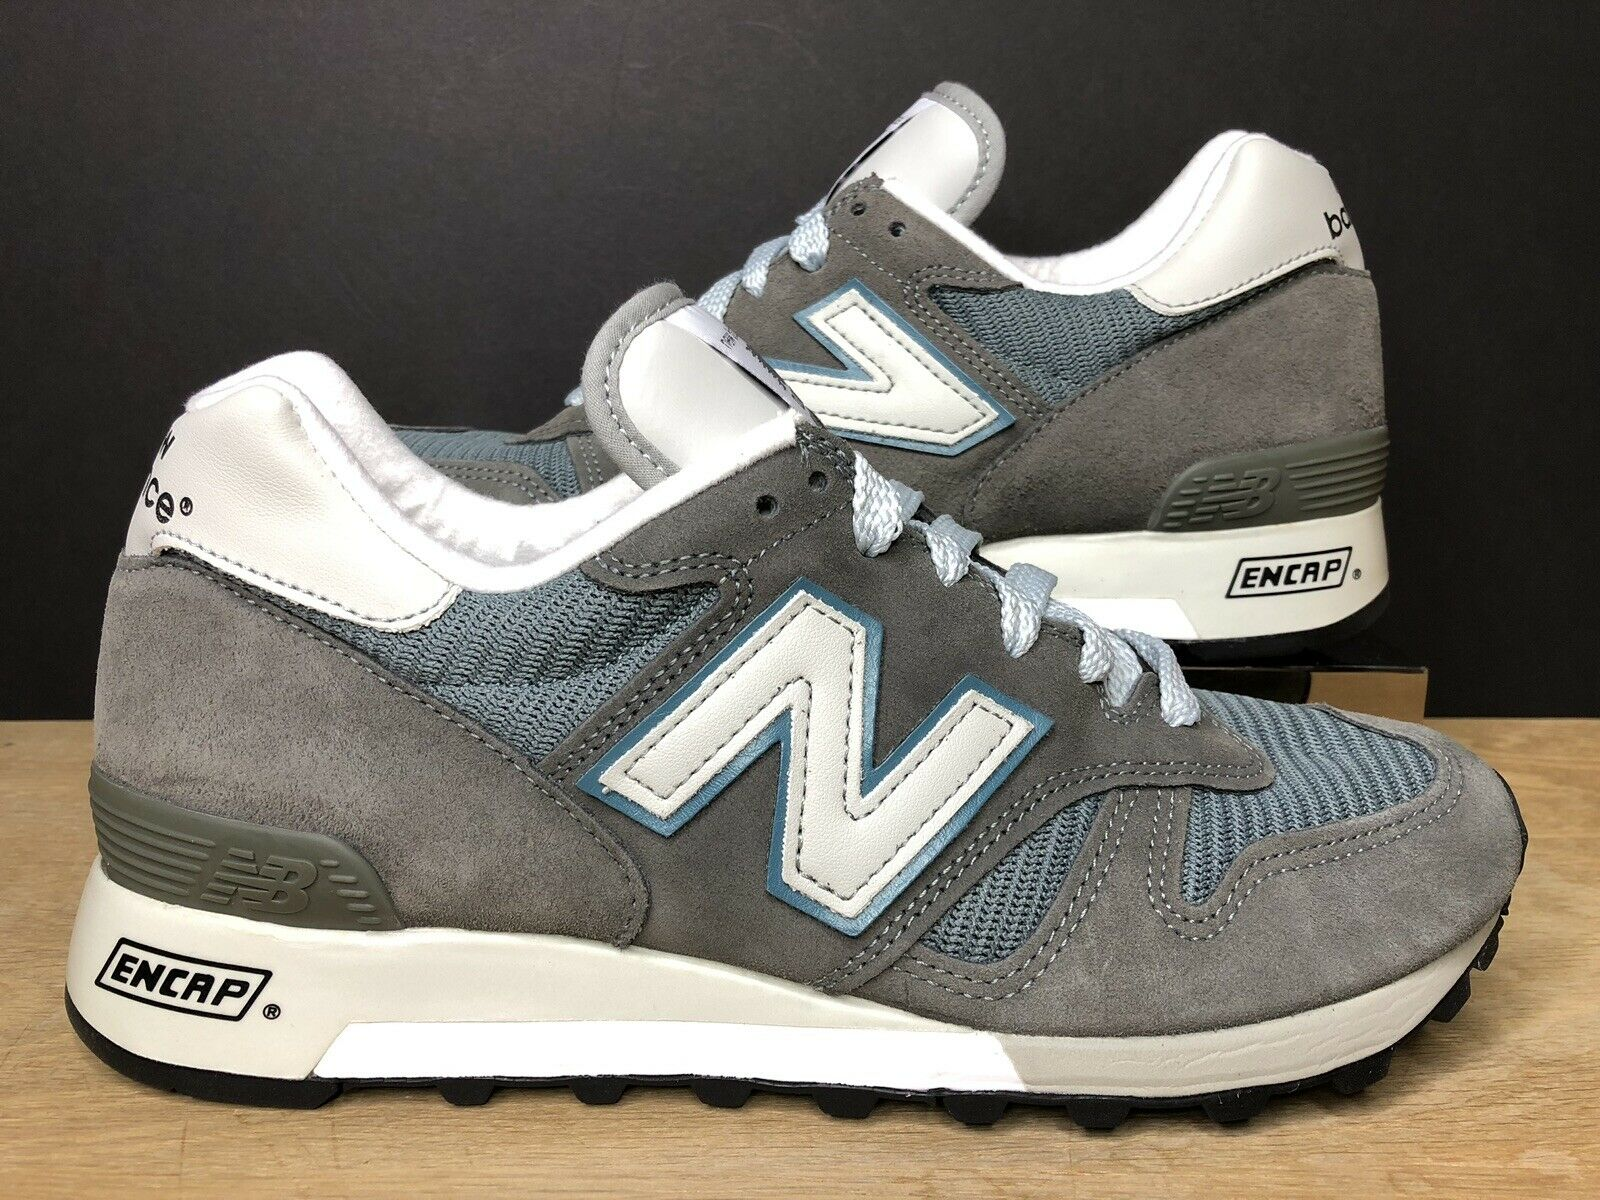 52b313dcb7cdd New Balance 1300 In USA 2E Grey M1300CLS Size 6.5 Heritage Made ...